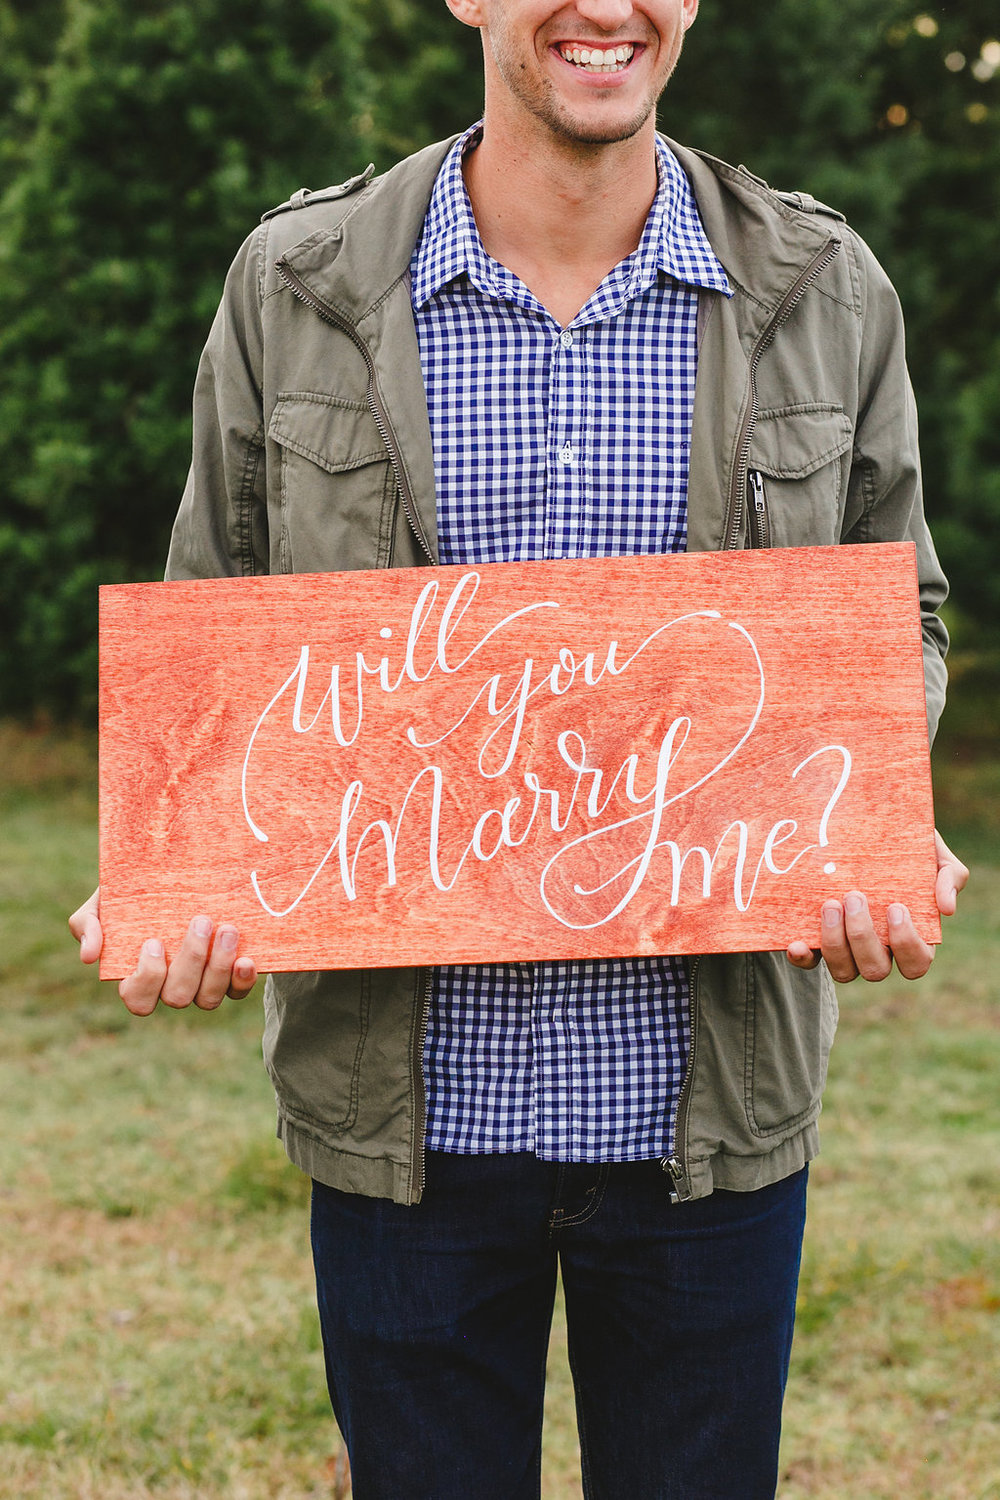 Will you marry me? | Lindsey Shea Photography | Natalie Grace Calligraphy Co.